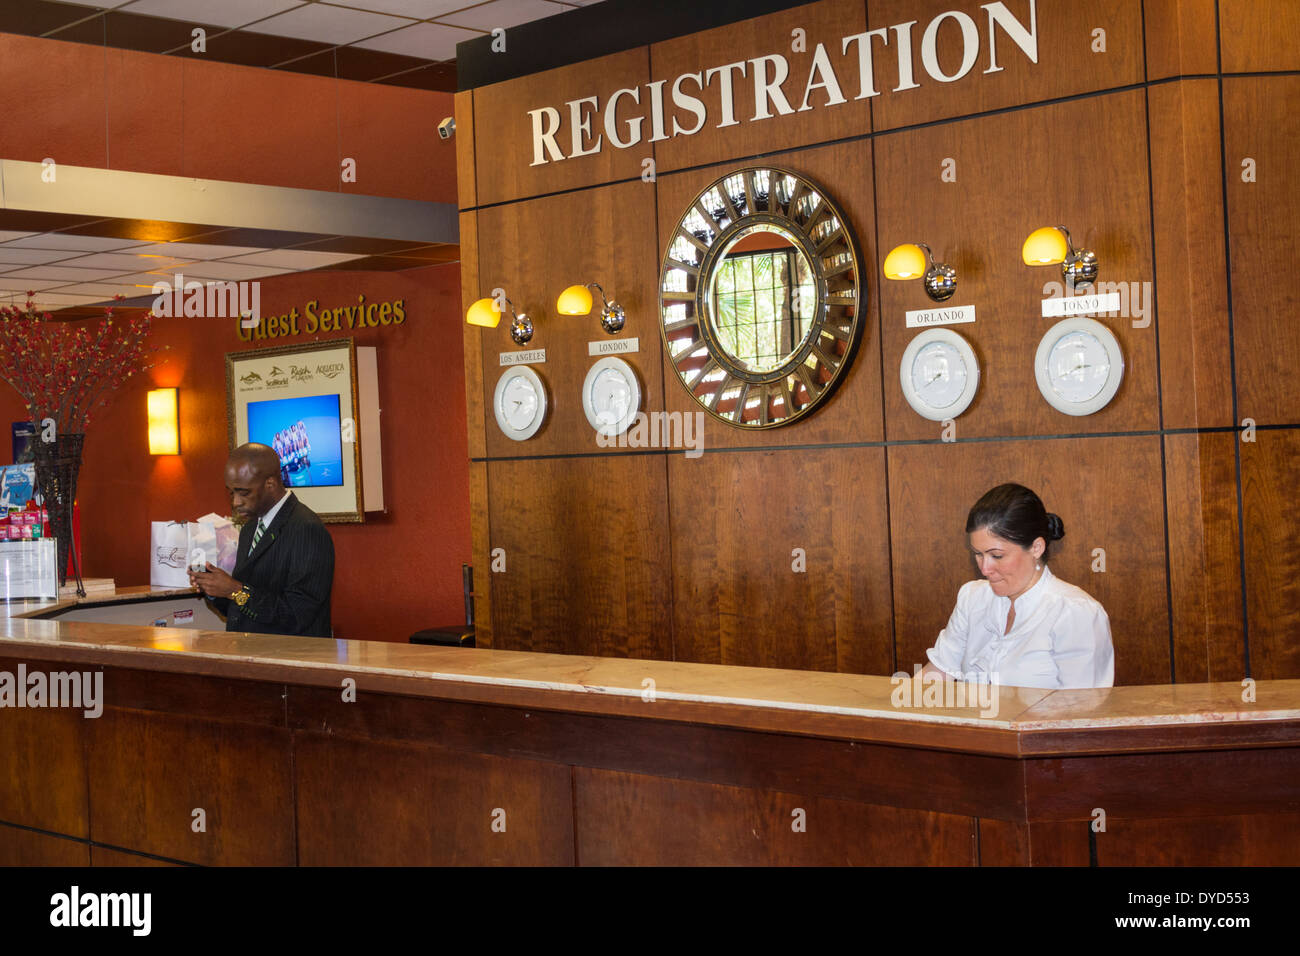 55 Inspirational Office Receptions, Lobbies, and Entryways ... |Hotel Front Office Lobby